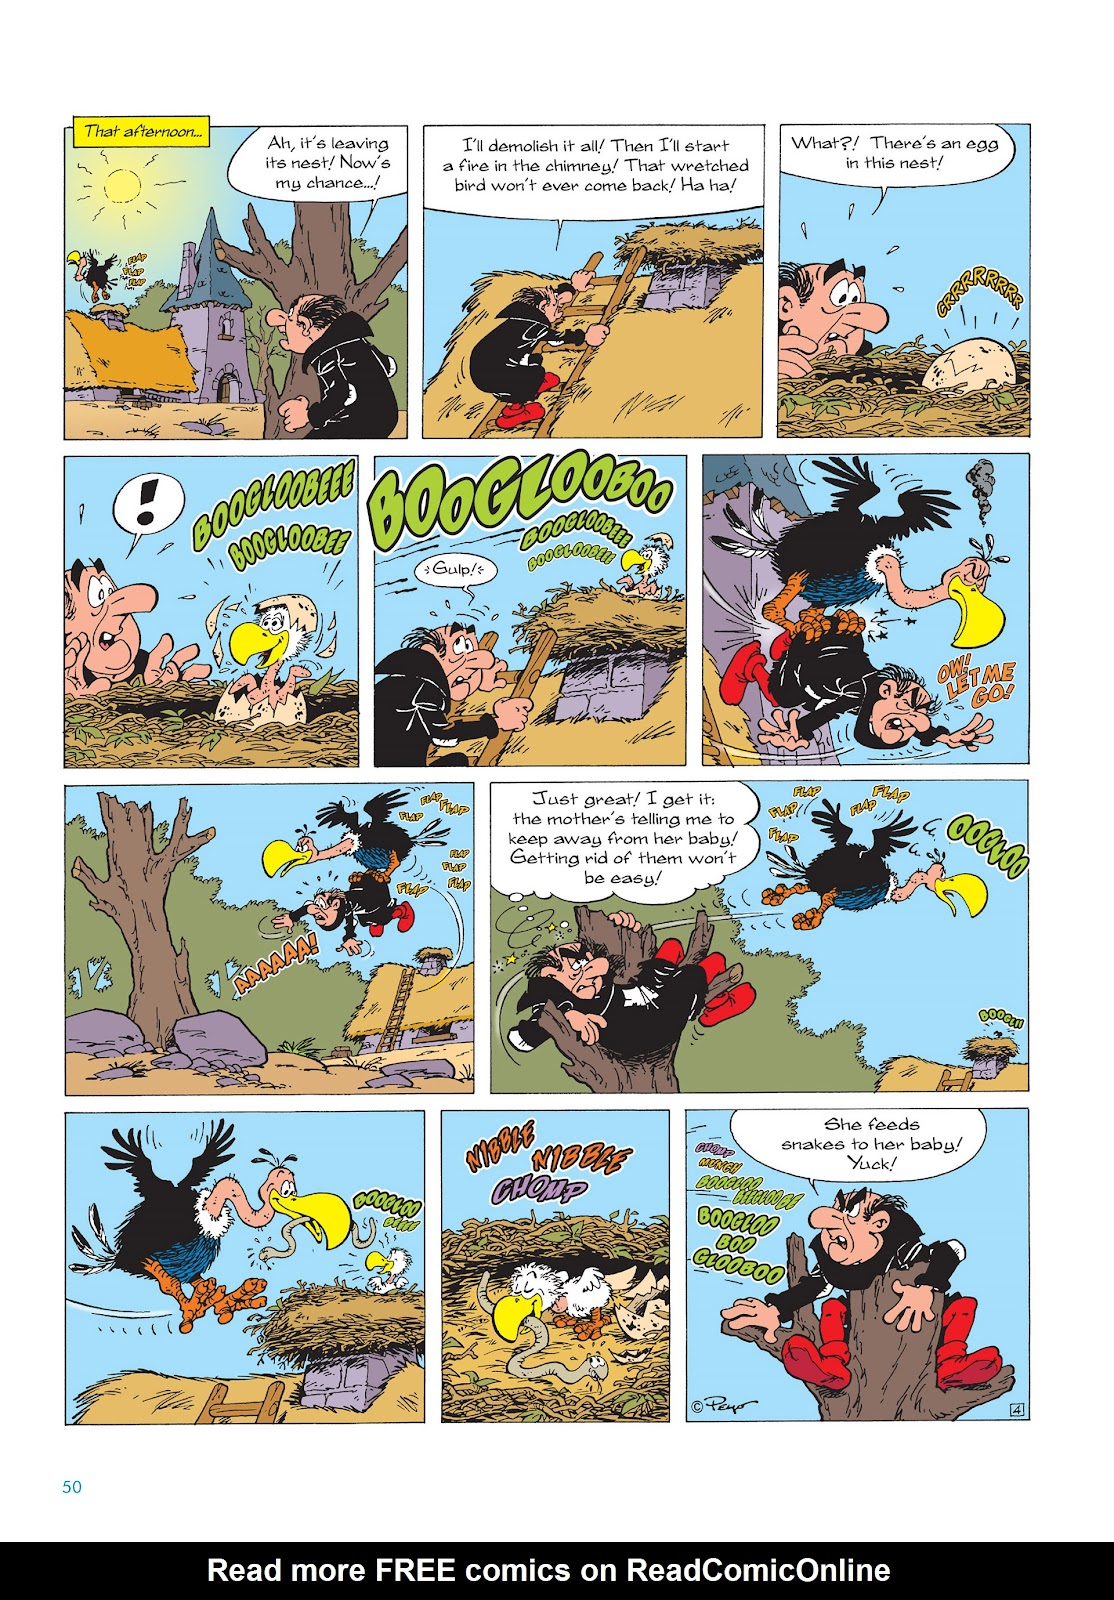 Read online The Smurfs comic -  Issue #15 - 51